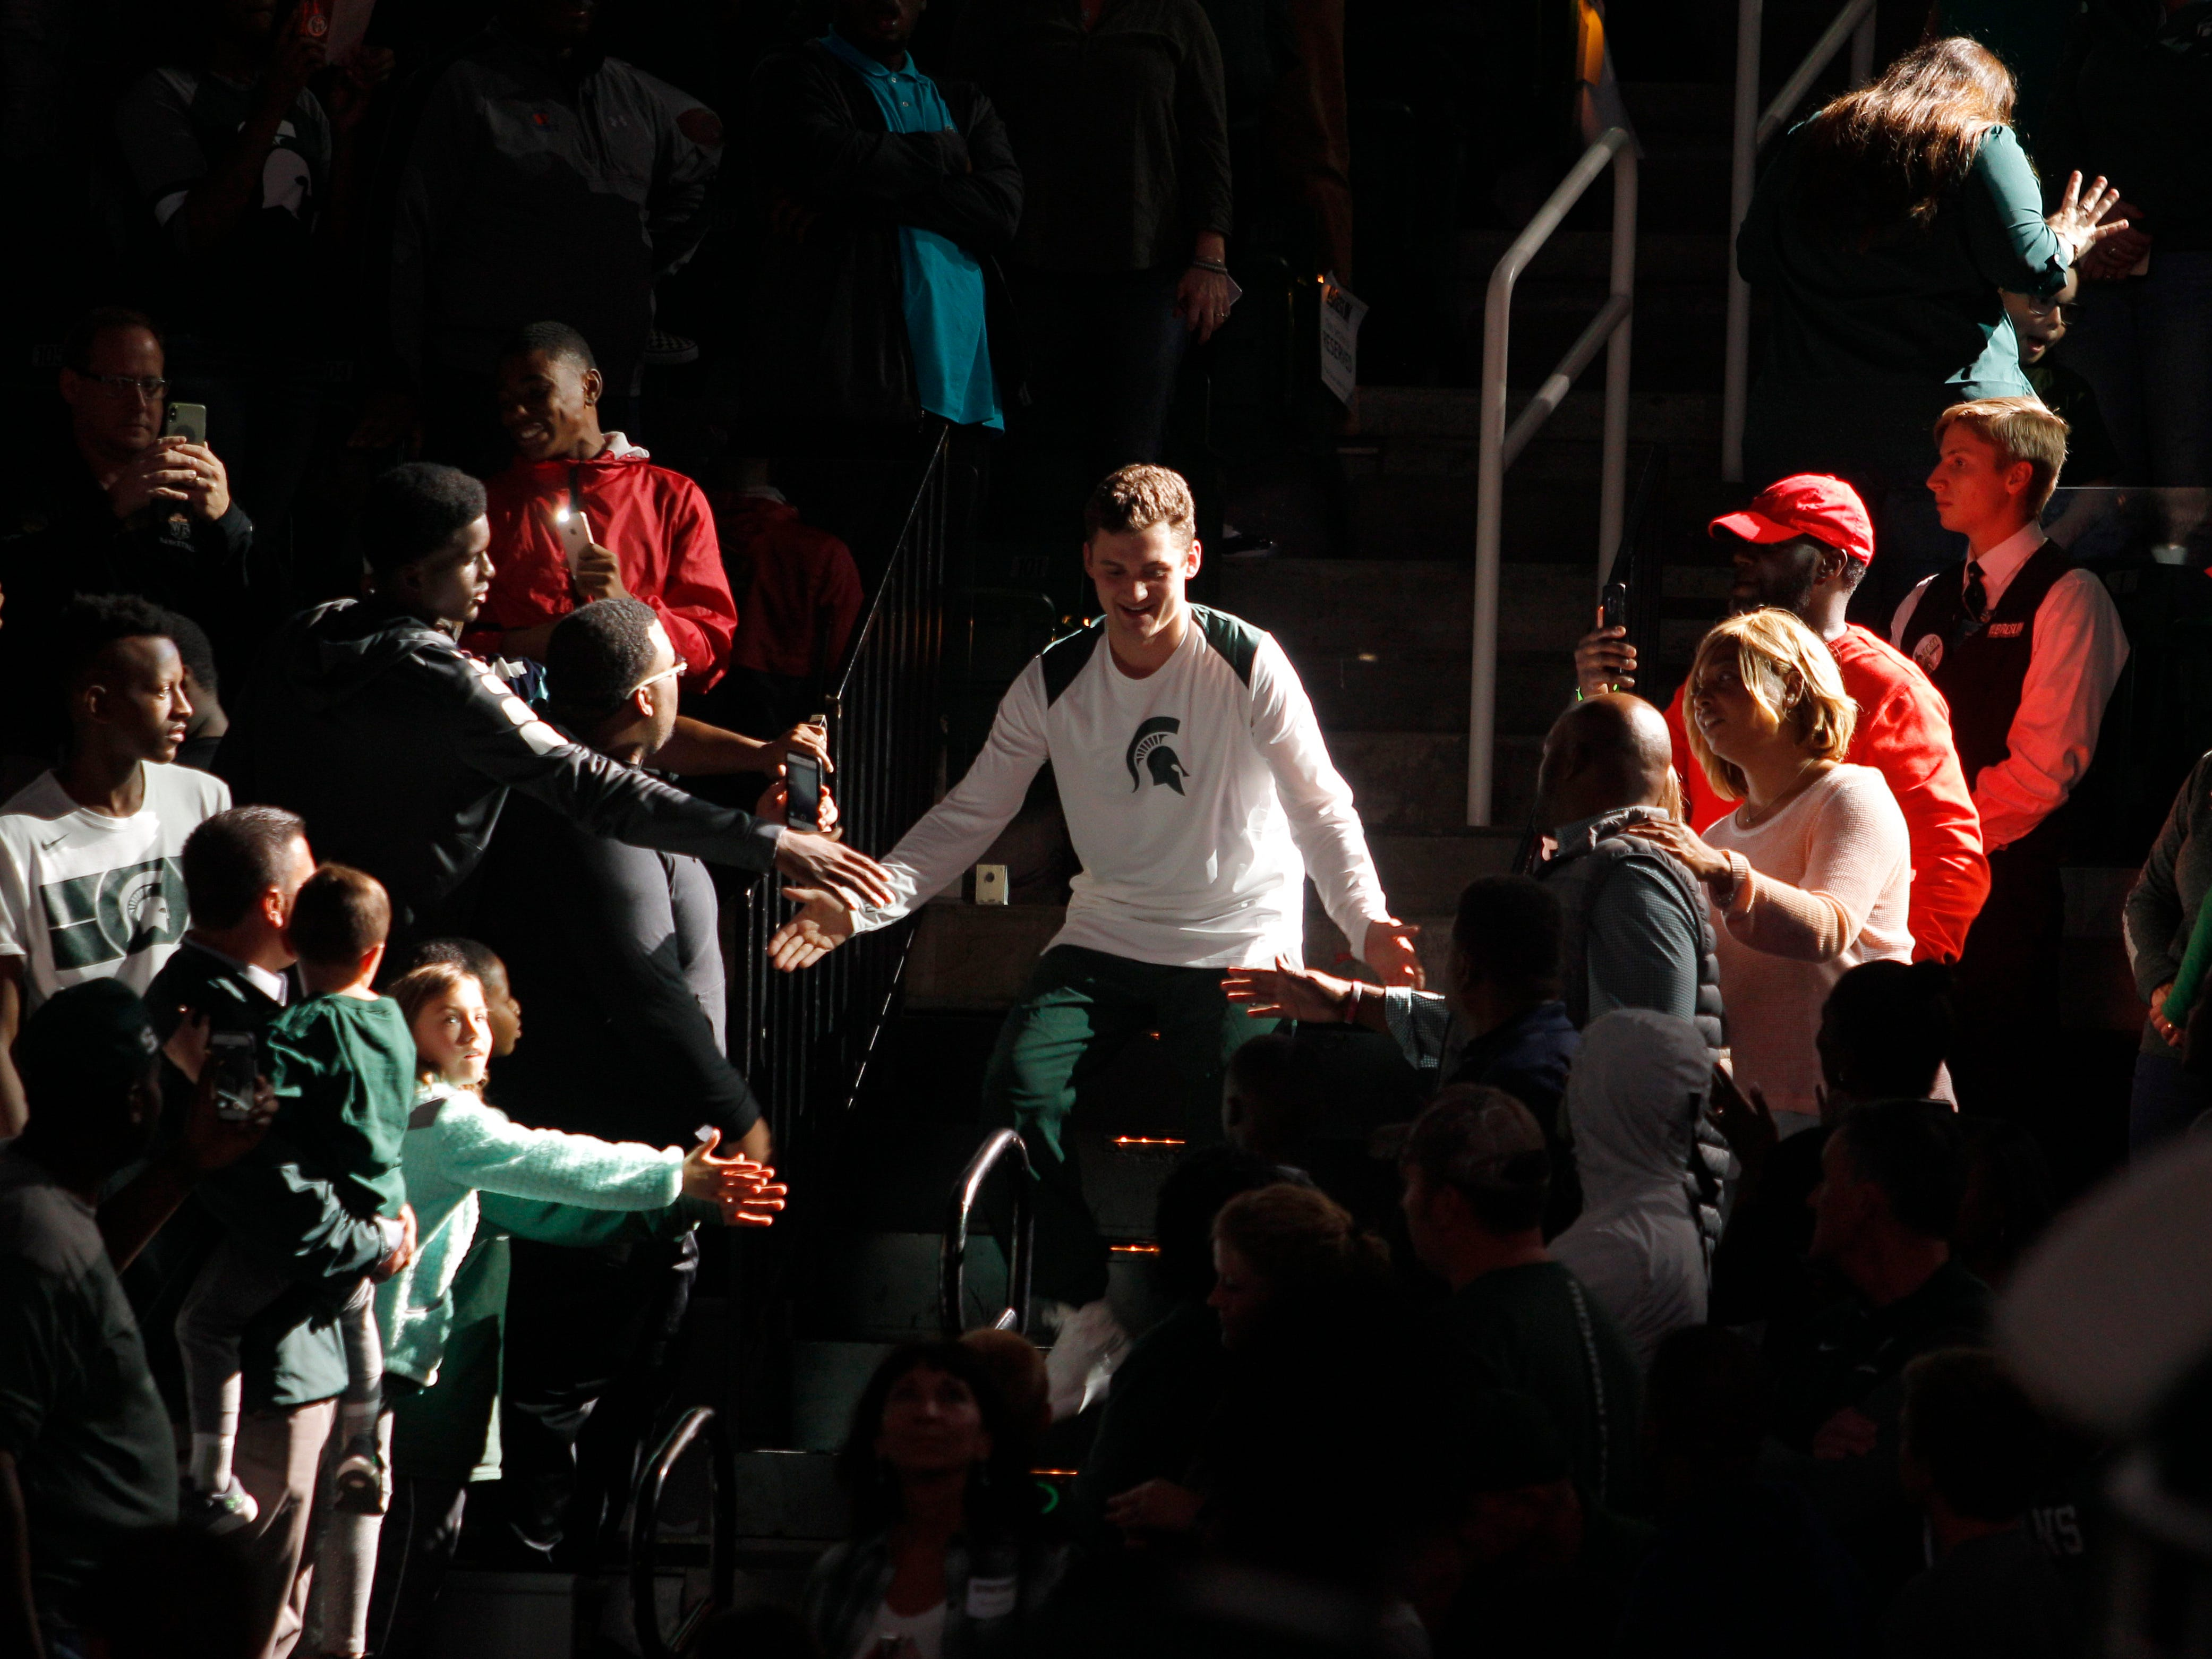 Michigan State's Foster Loyer is introduced at MSU Madness, Friday, Oct. 5, 2018, in East Lansing, Mich.